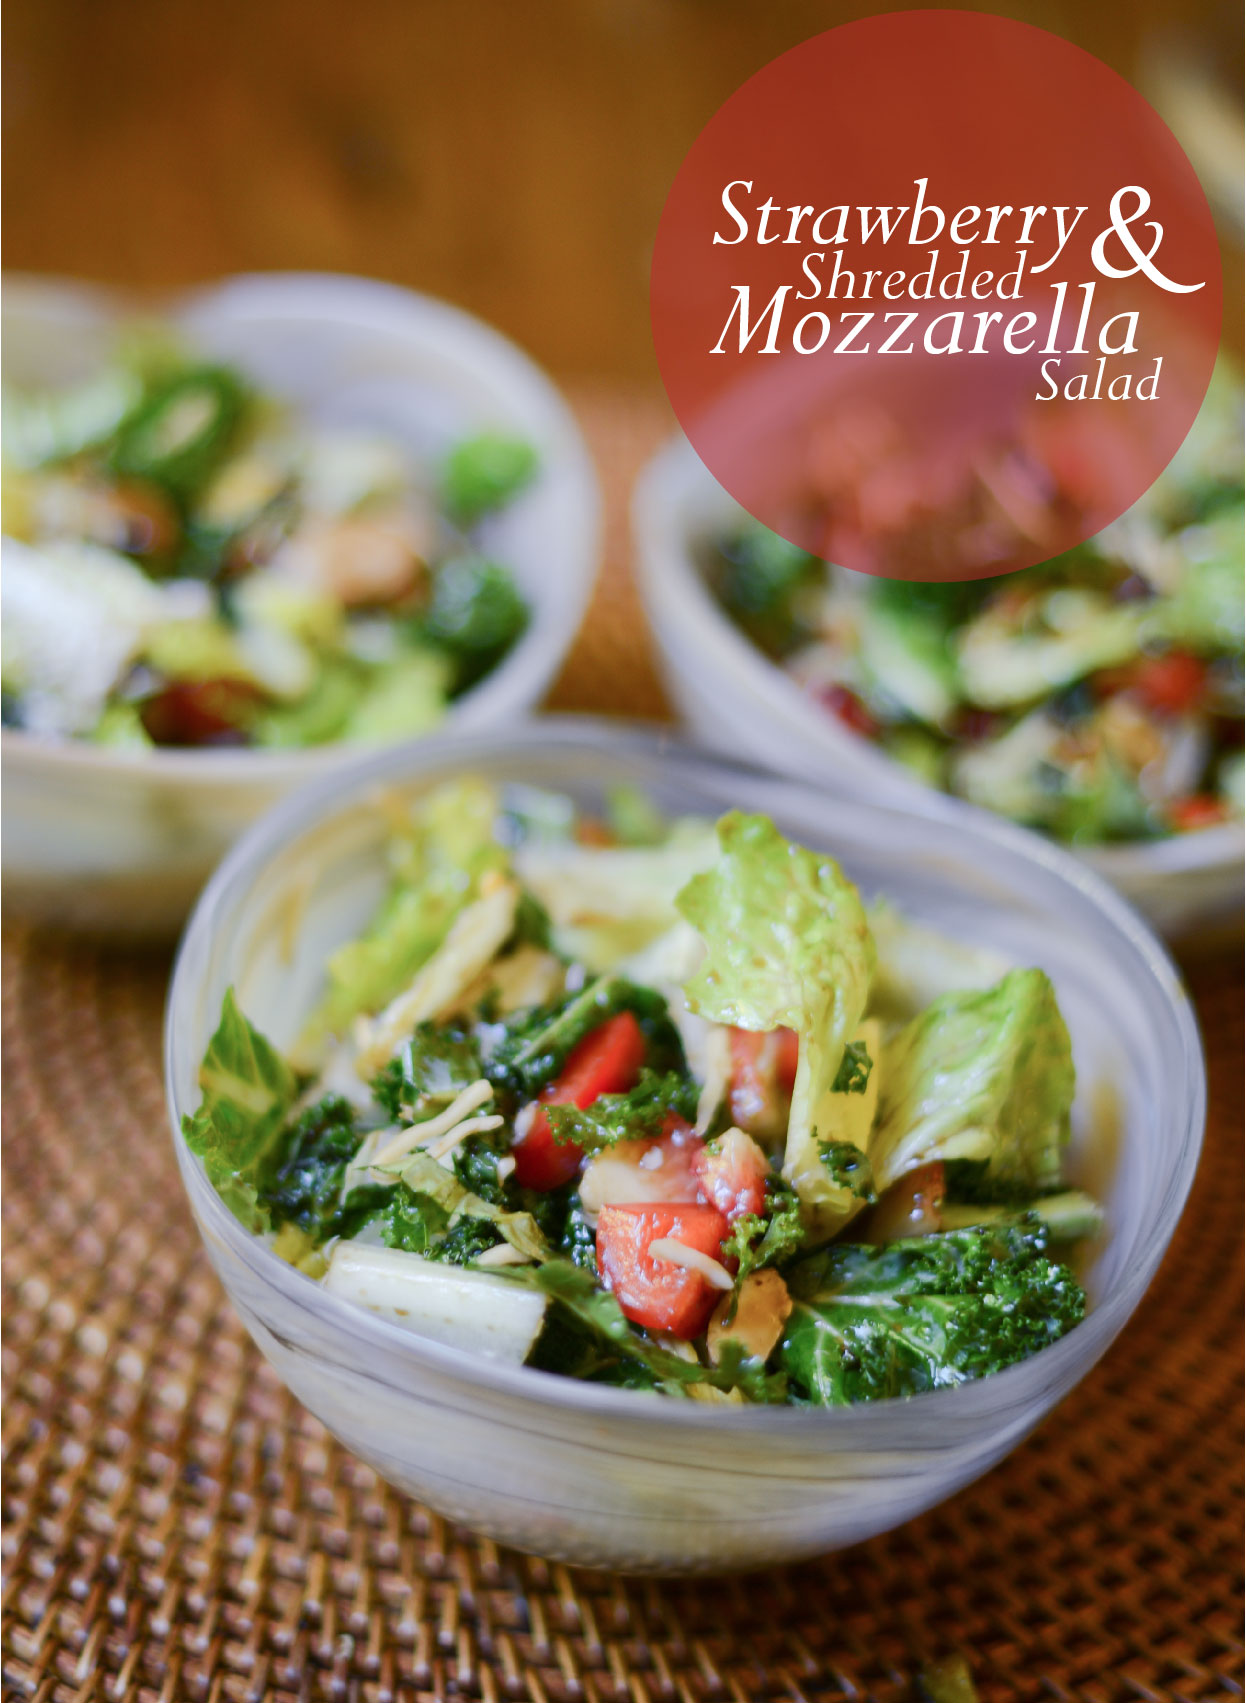 Strawberry & Mozzarella Salad by The Fashionable Hostess